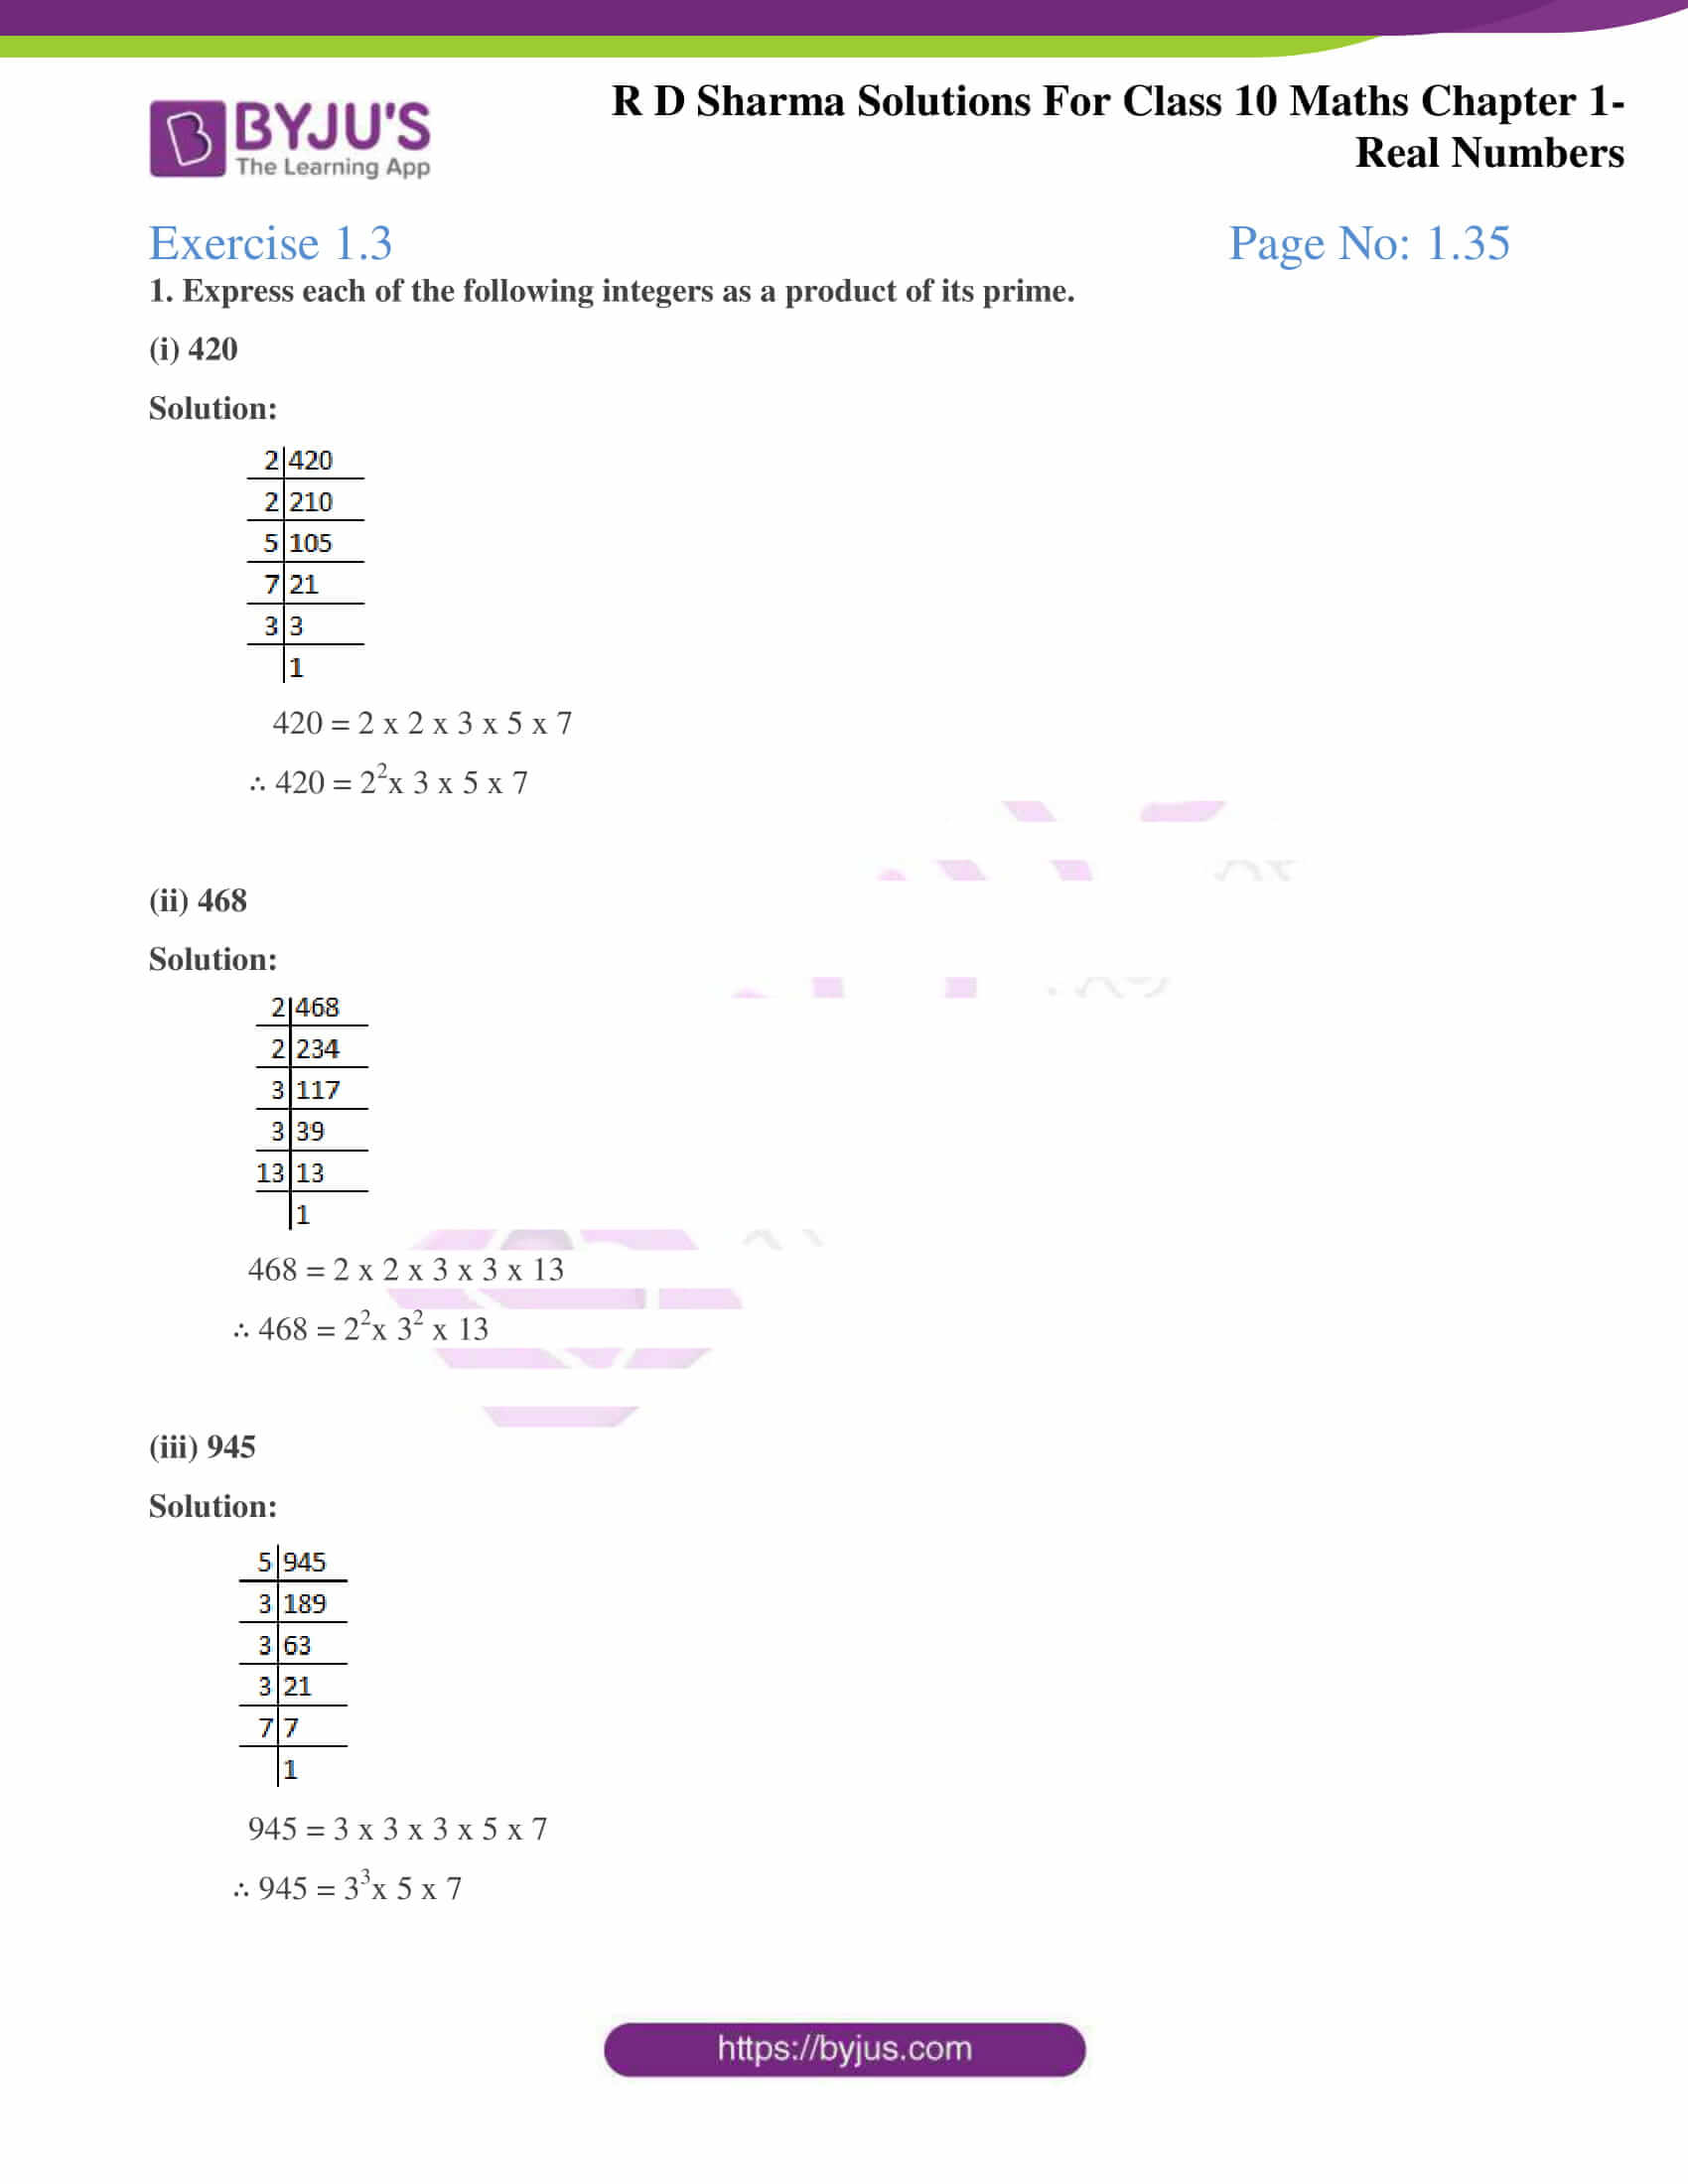 rd sharma class 10 chapter 1 real numbers solutions exercise 3 1